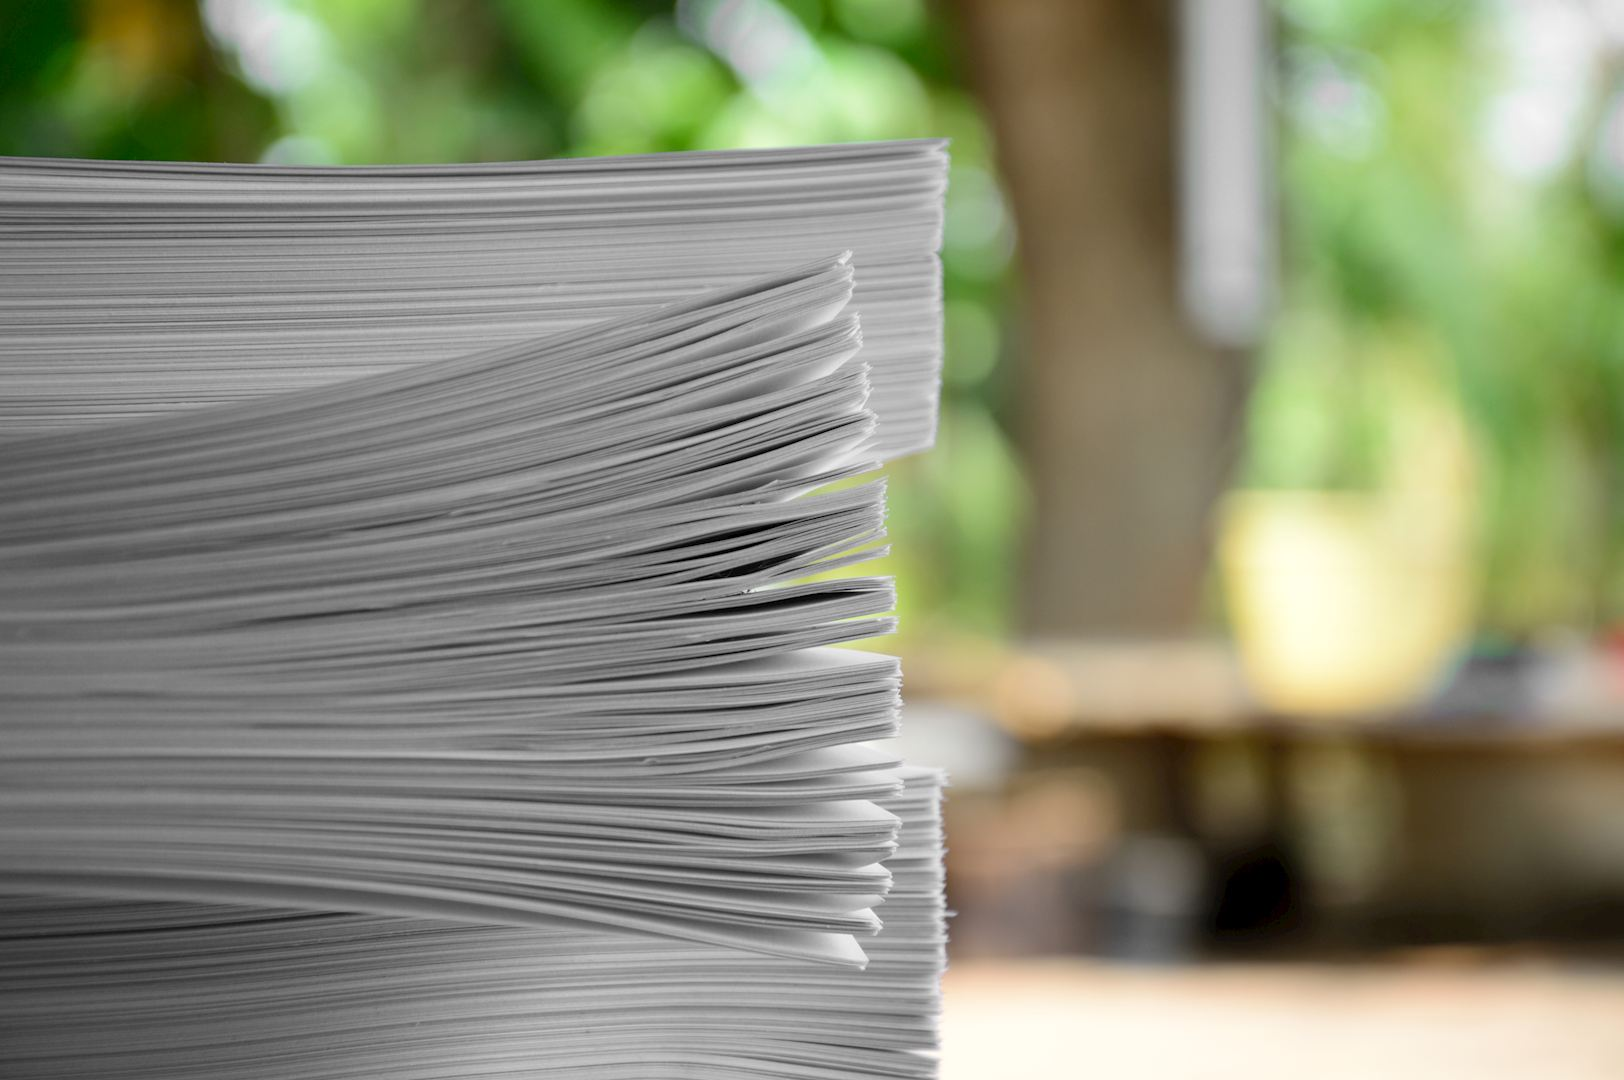 News | How many trees perish to make a book? | die Keure